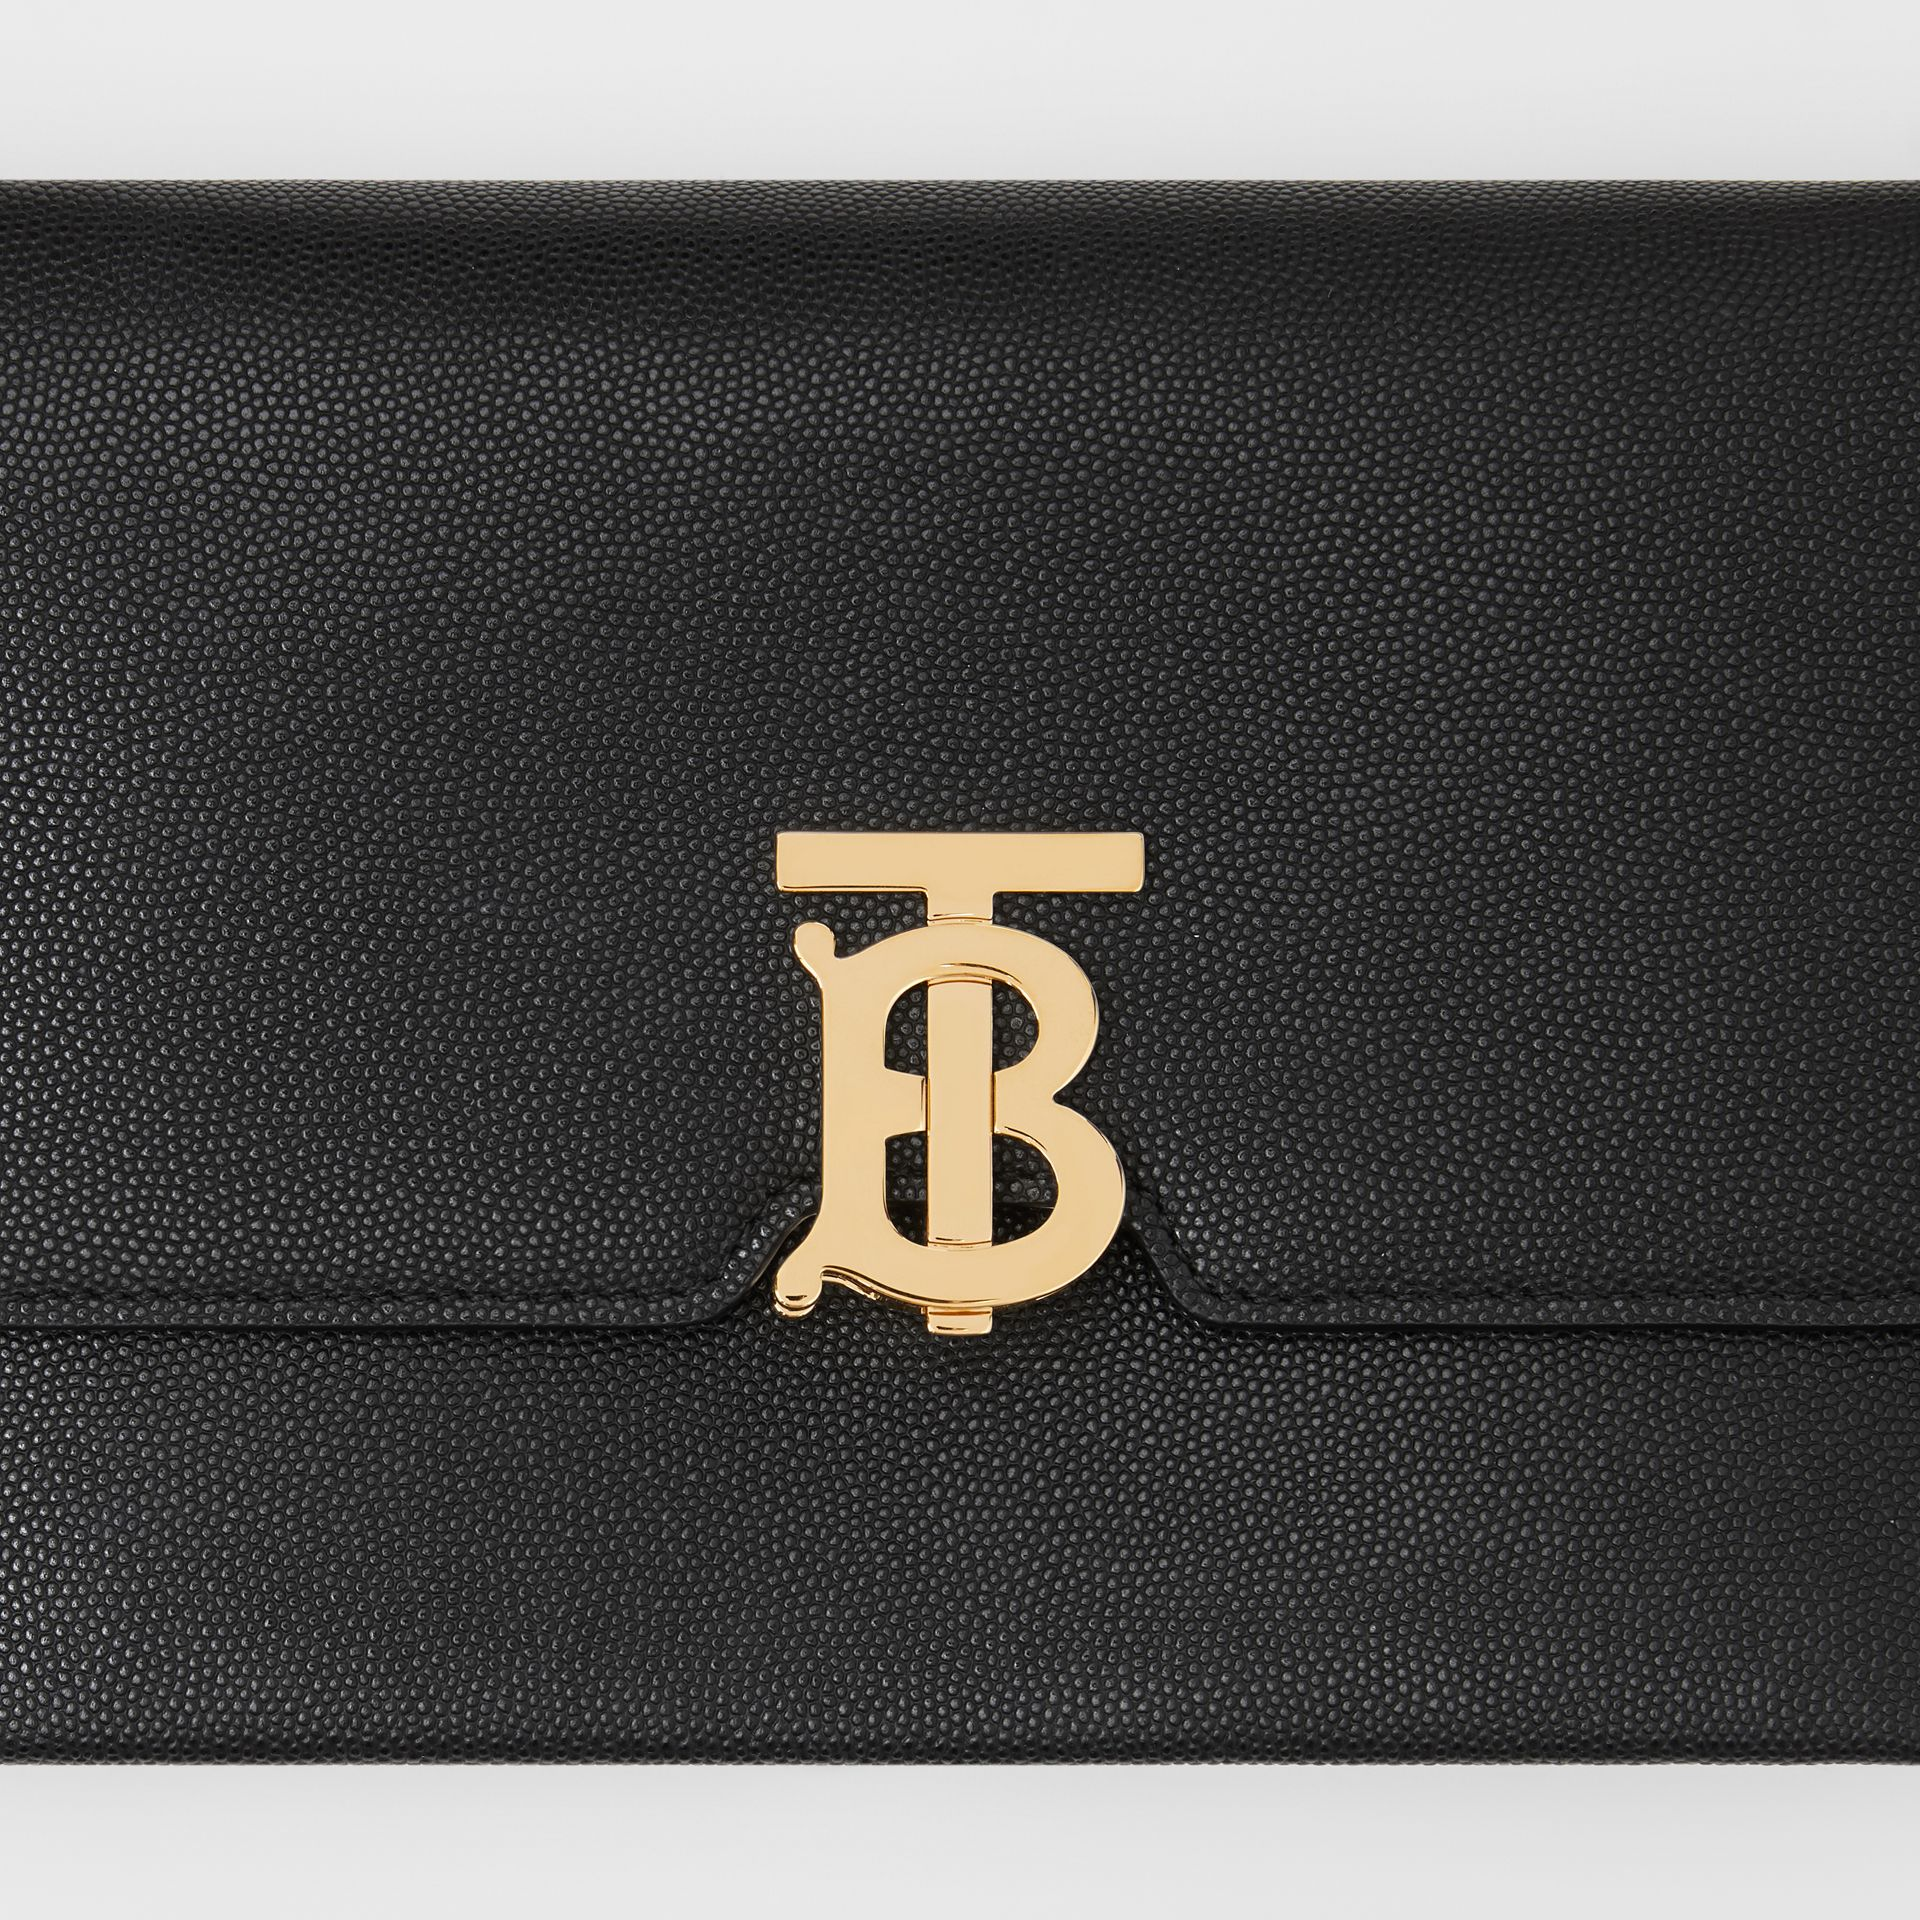 Small Monogram Motif Leather Crossbody Bag in Black - Women | Burberry United Kingdom - gallery image 1